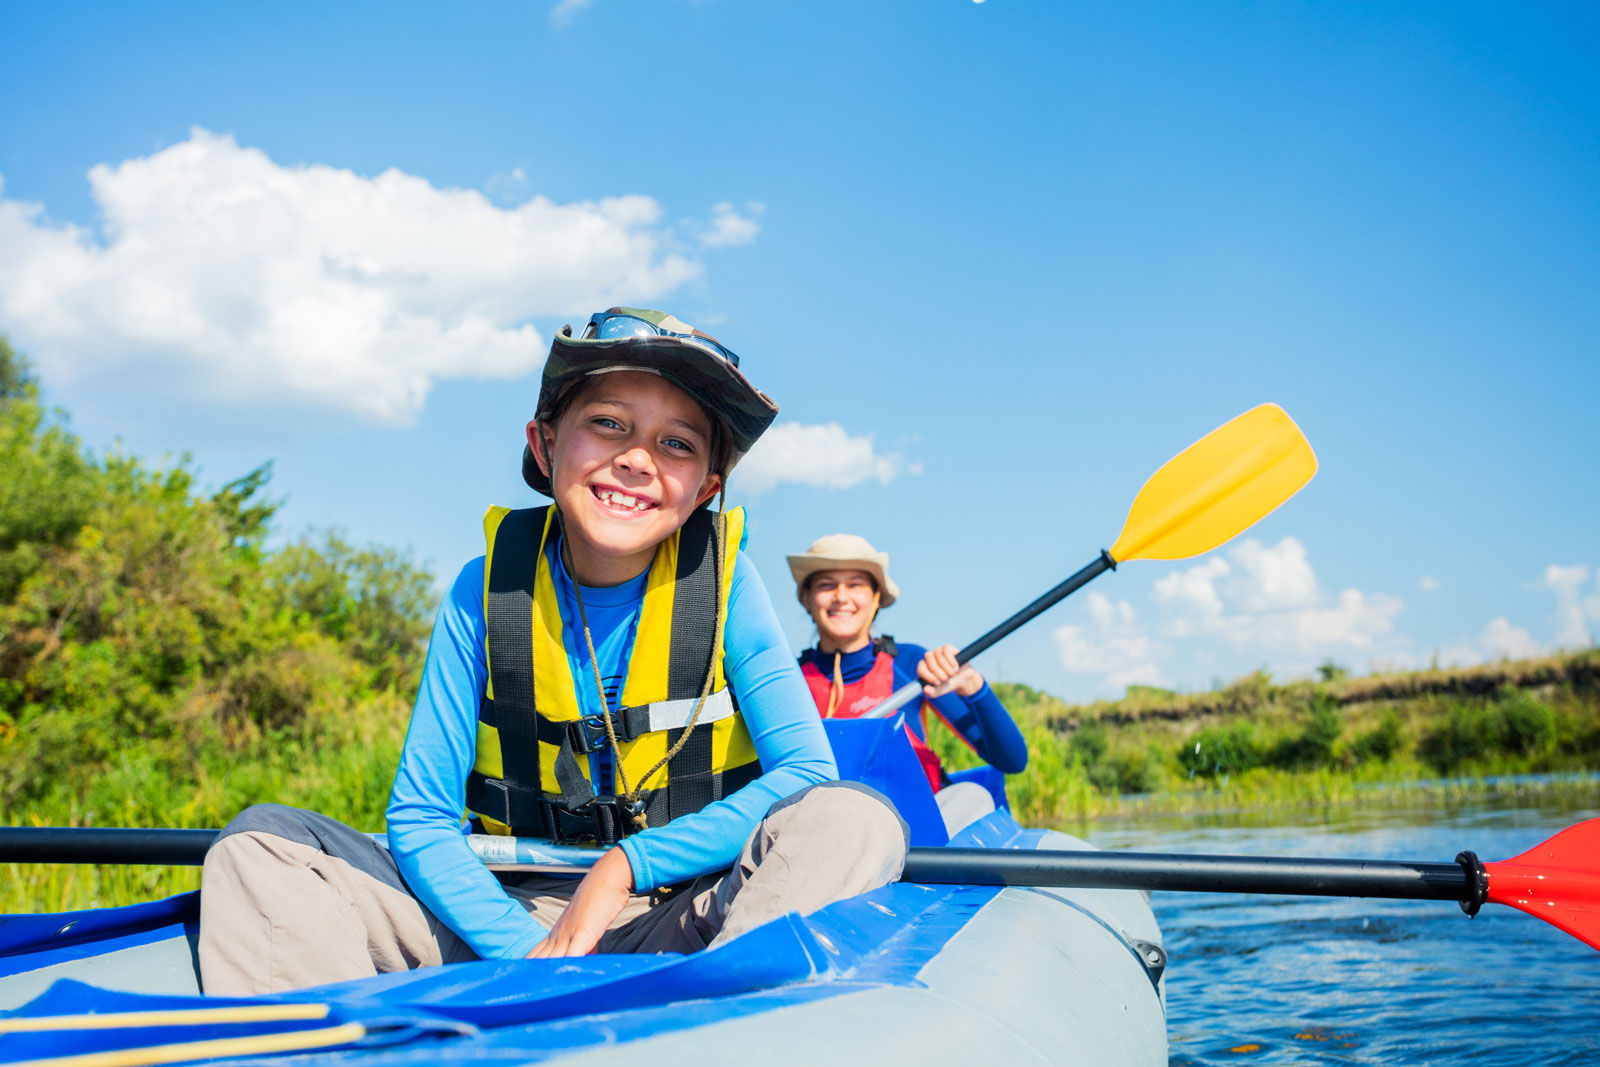 A fun summer activity is to paddle the South Saskatchewan River when staying at Medicine Hat hotels.